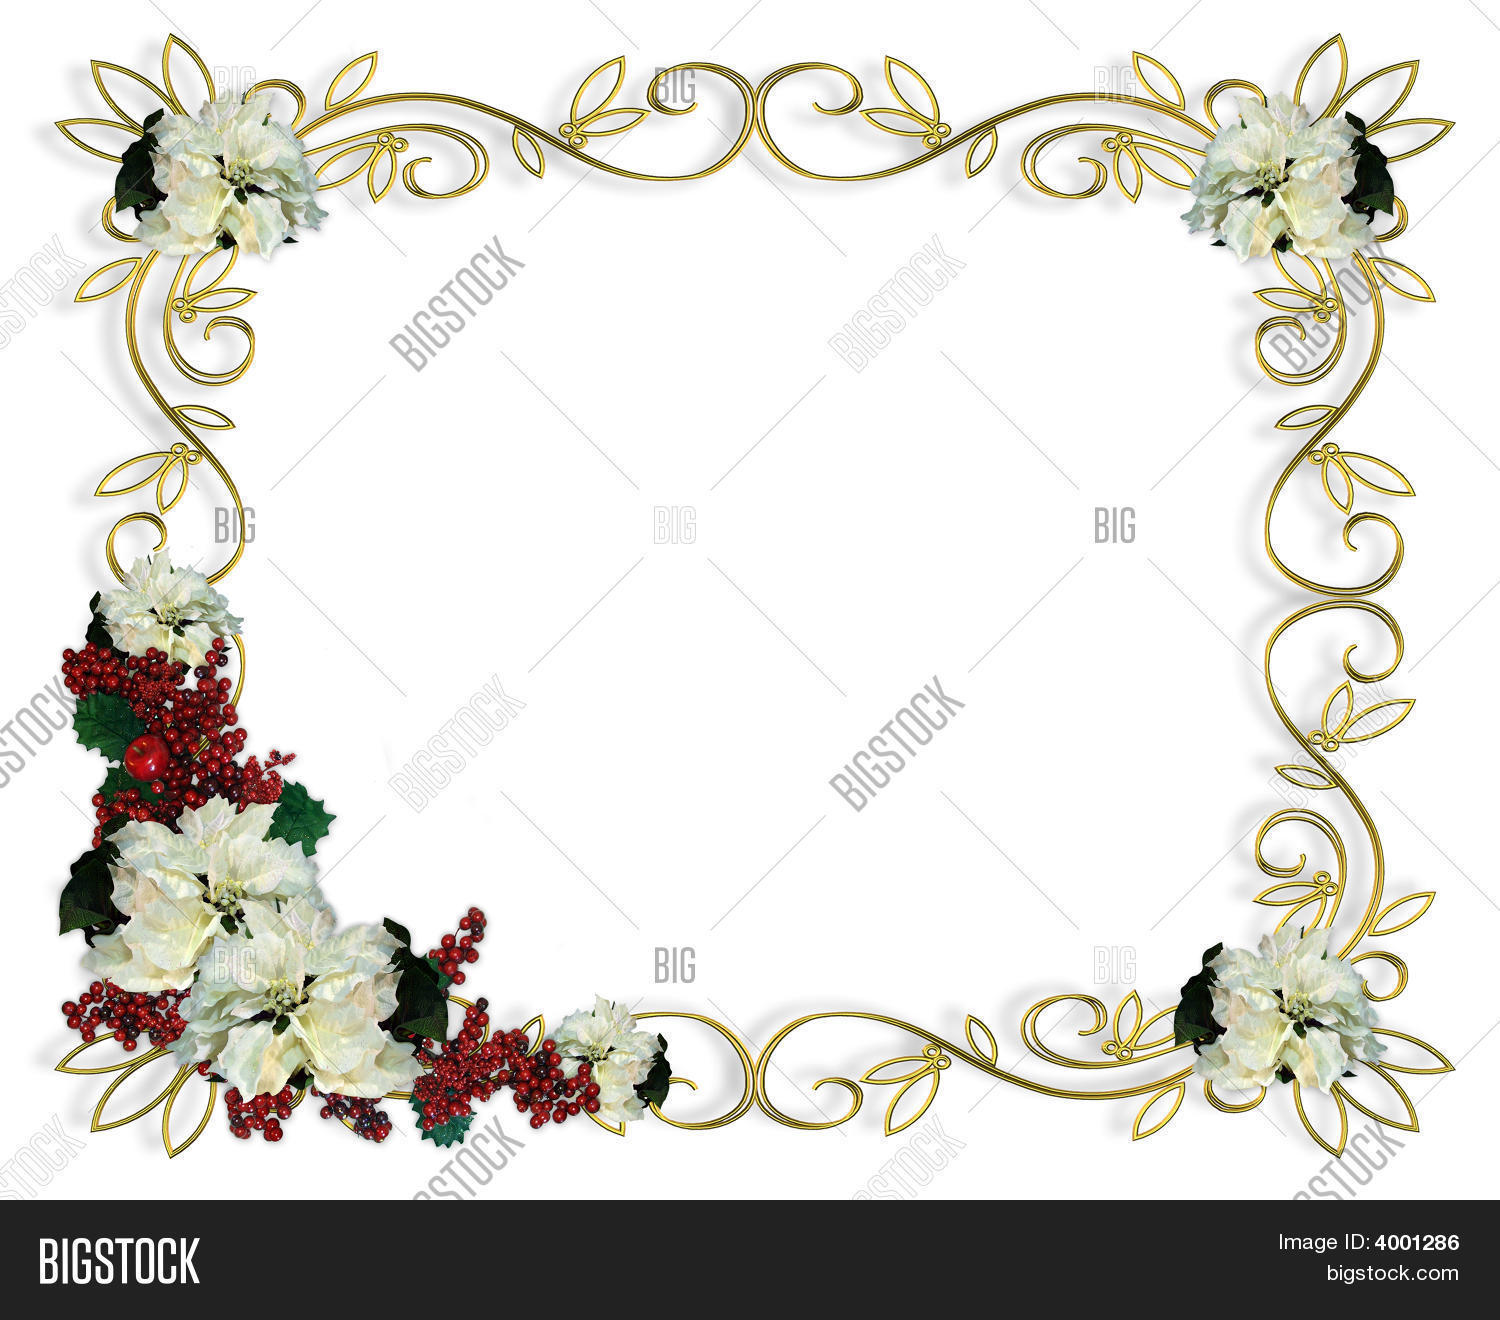 Christmas Frame Gold Image & Photo (Free Trial) | Bigstock